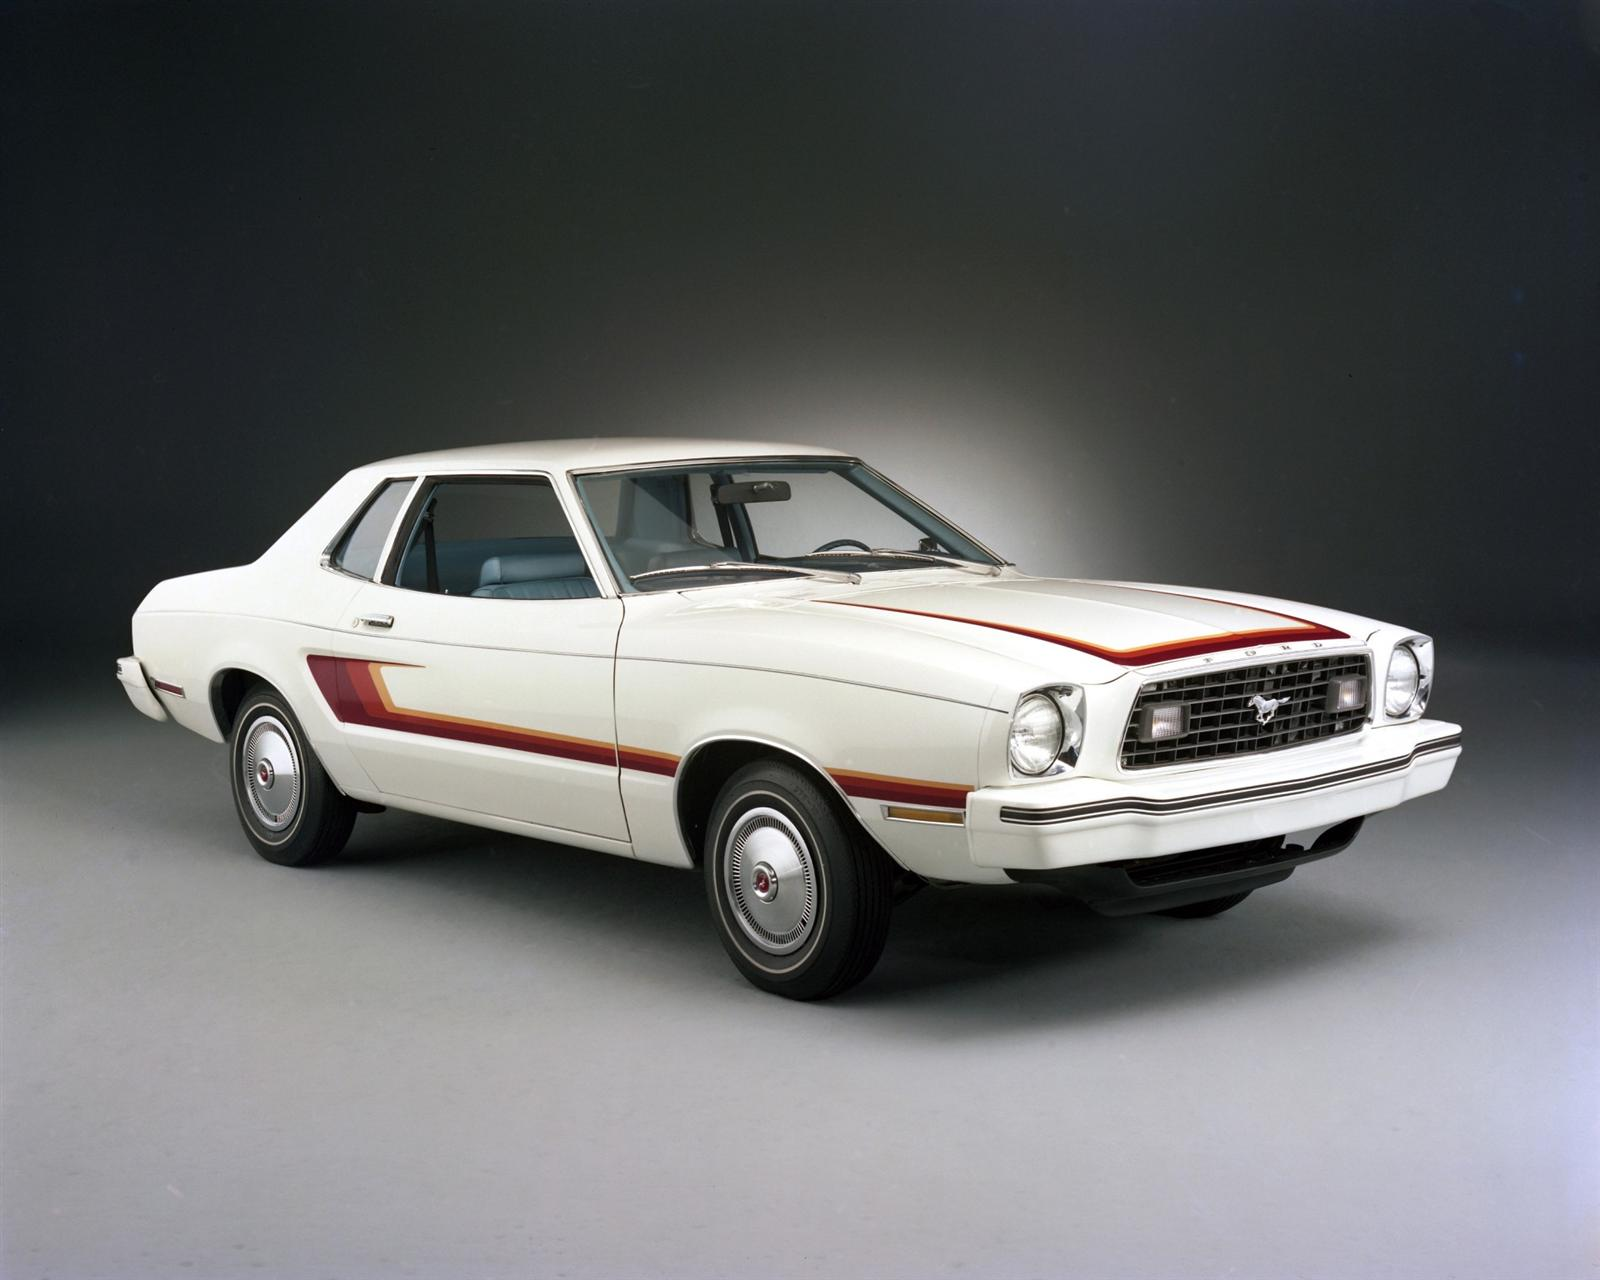 1978 ford mustang ii history pictures value auction sales research and news